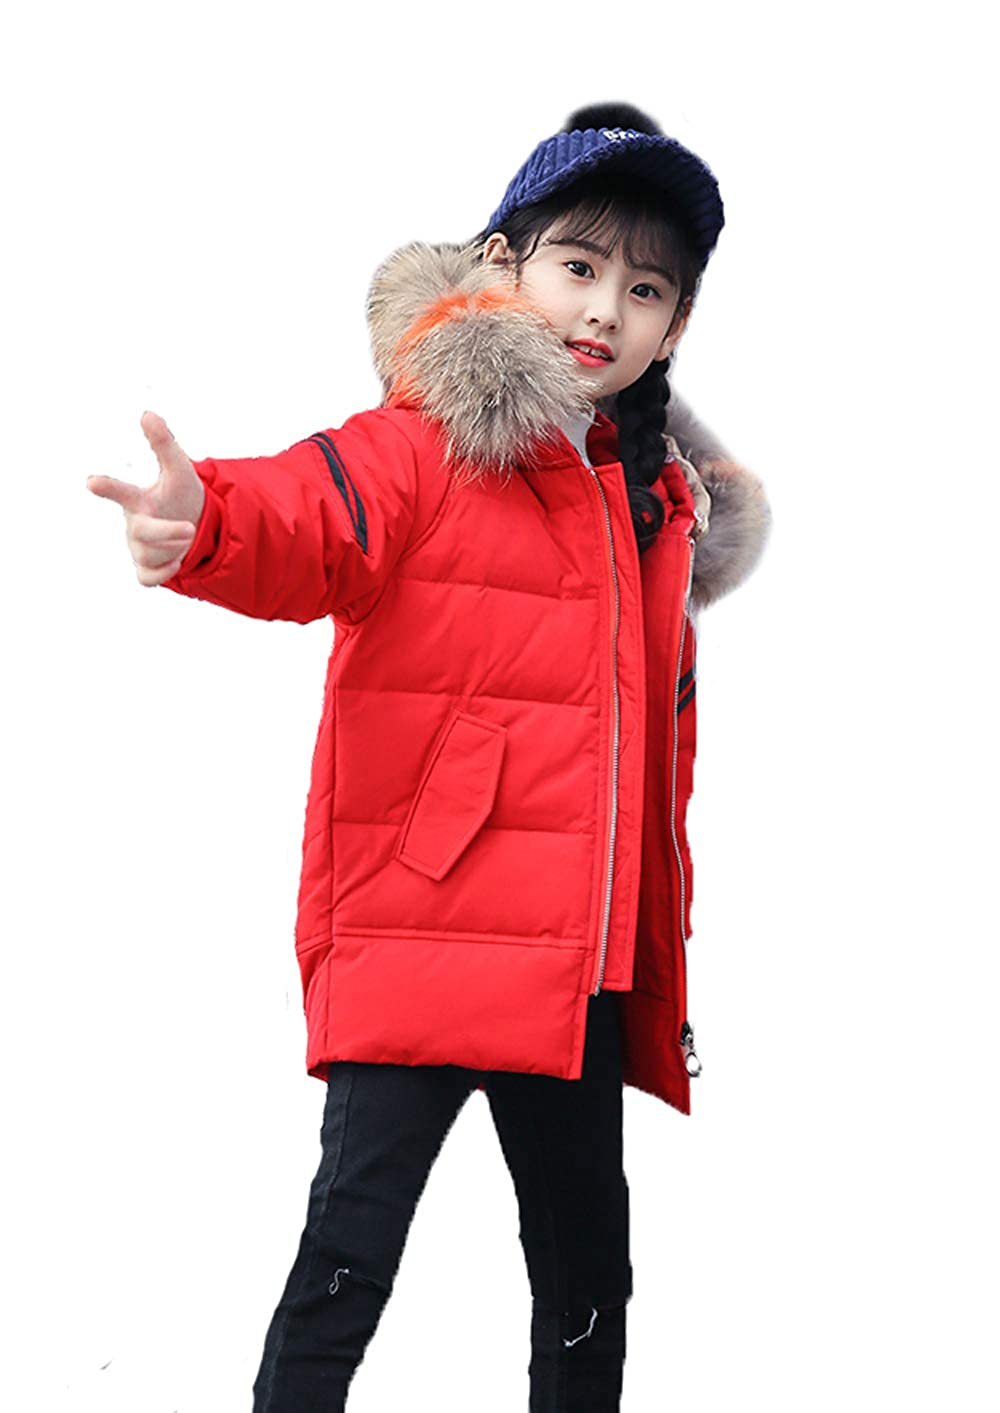 YEEFINE SNOWING Girls Fashion Hooded Down Jacket Padded Short Coat YS